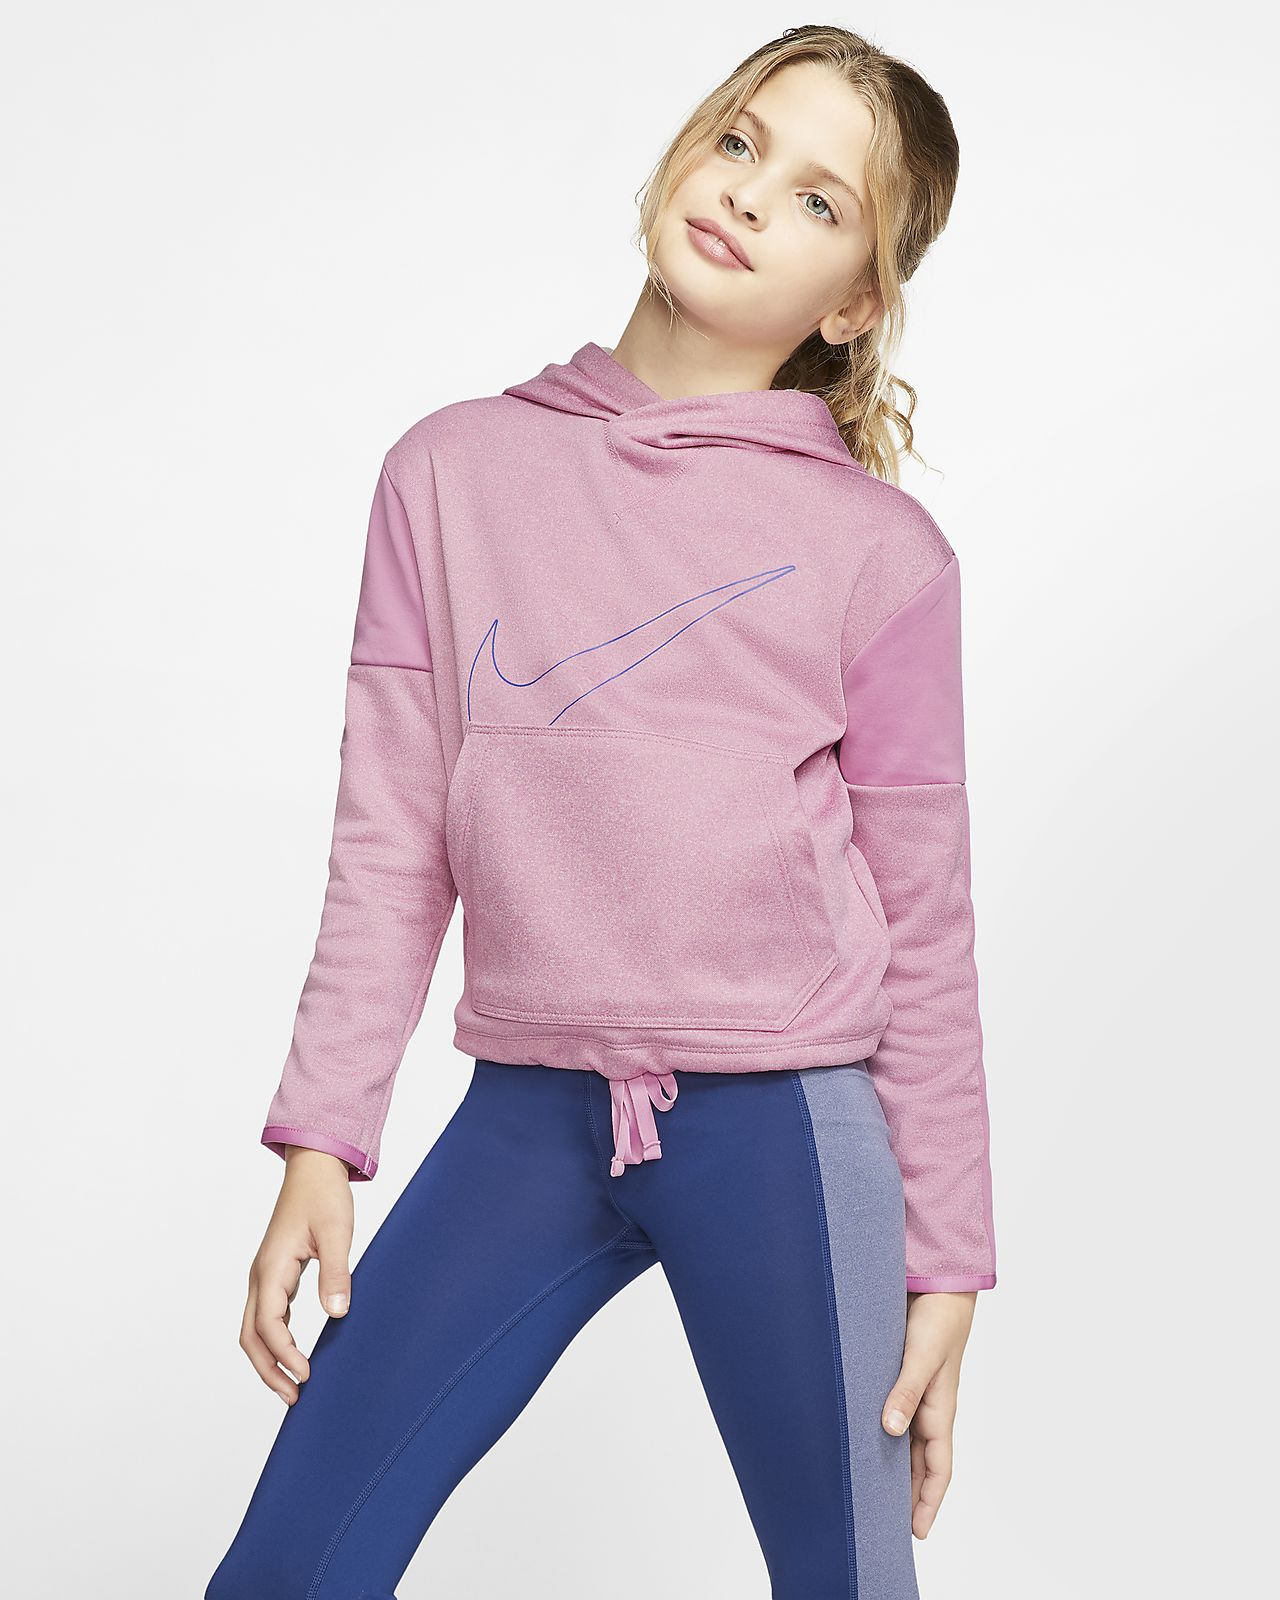 Nike Therma Girls' Graphic Training Pullover Hoodie